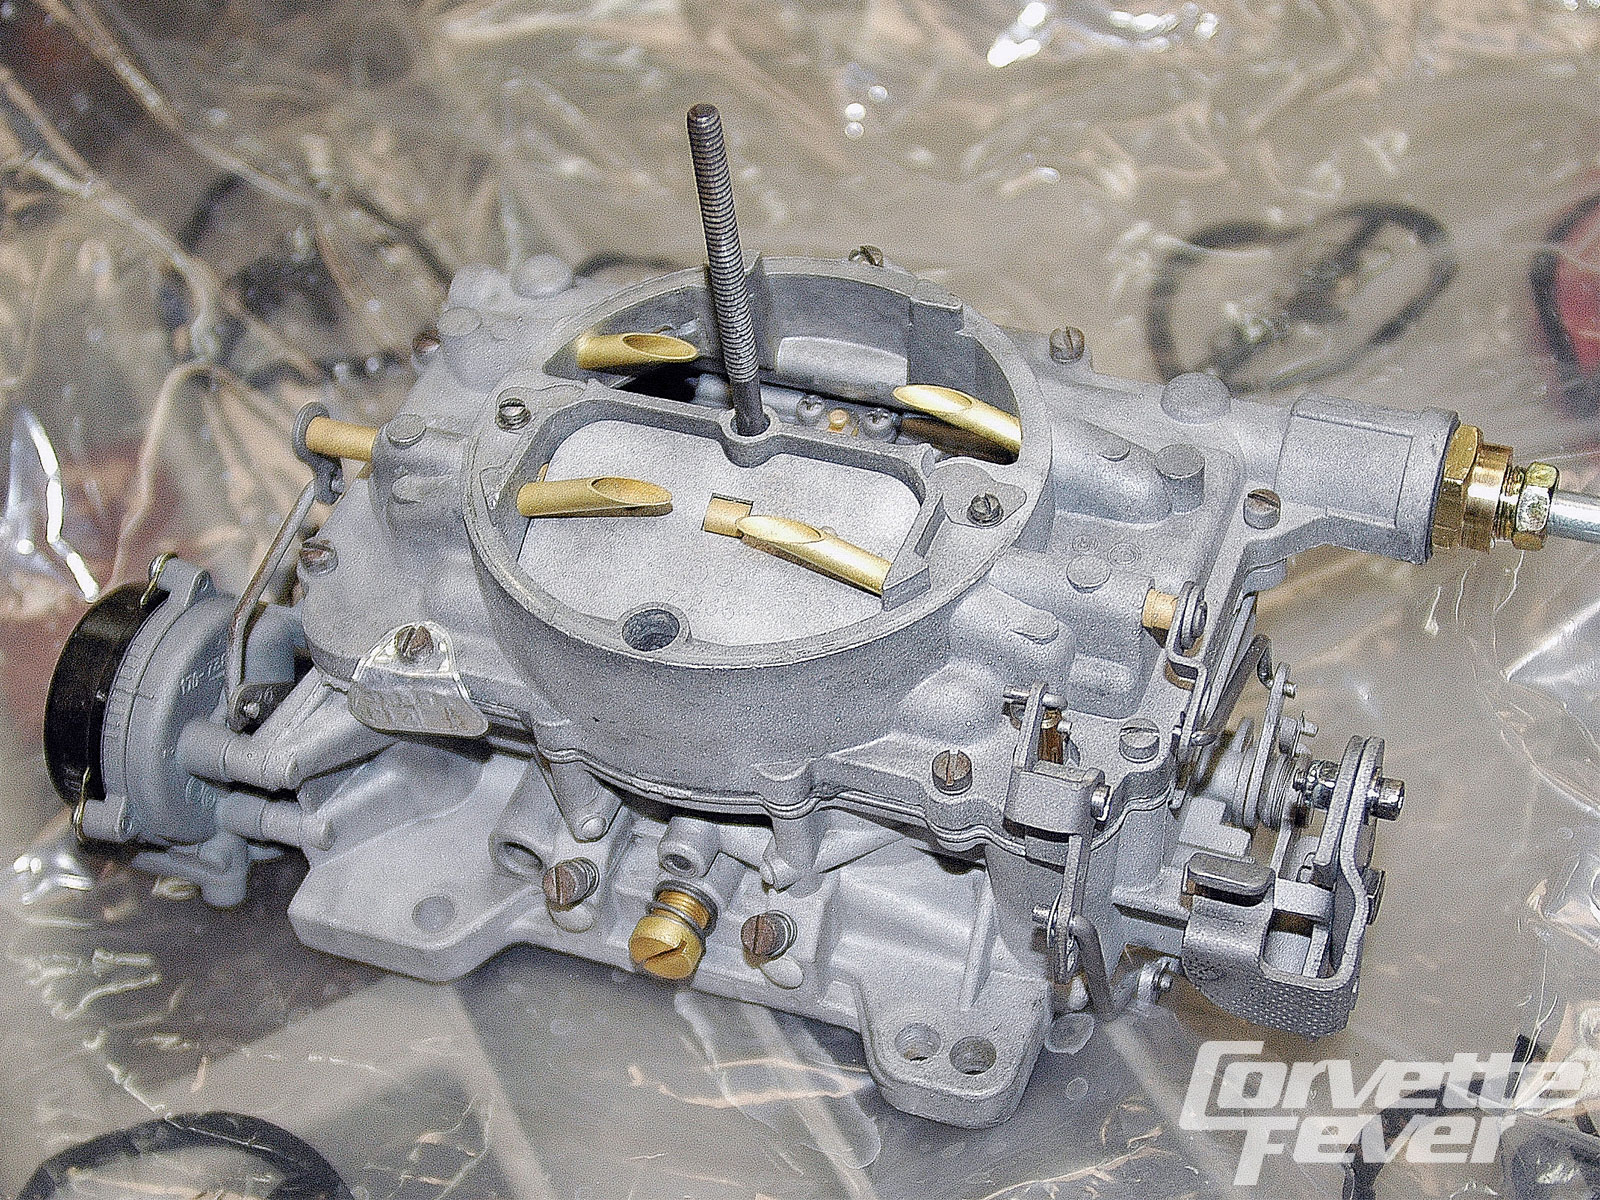 Corvette Carburetor Rebuild - Carter AFB Blueprint Rebuild